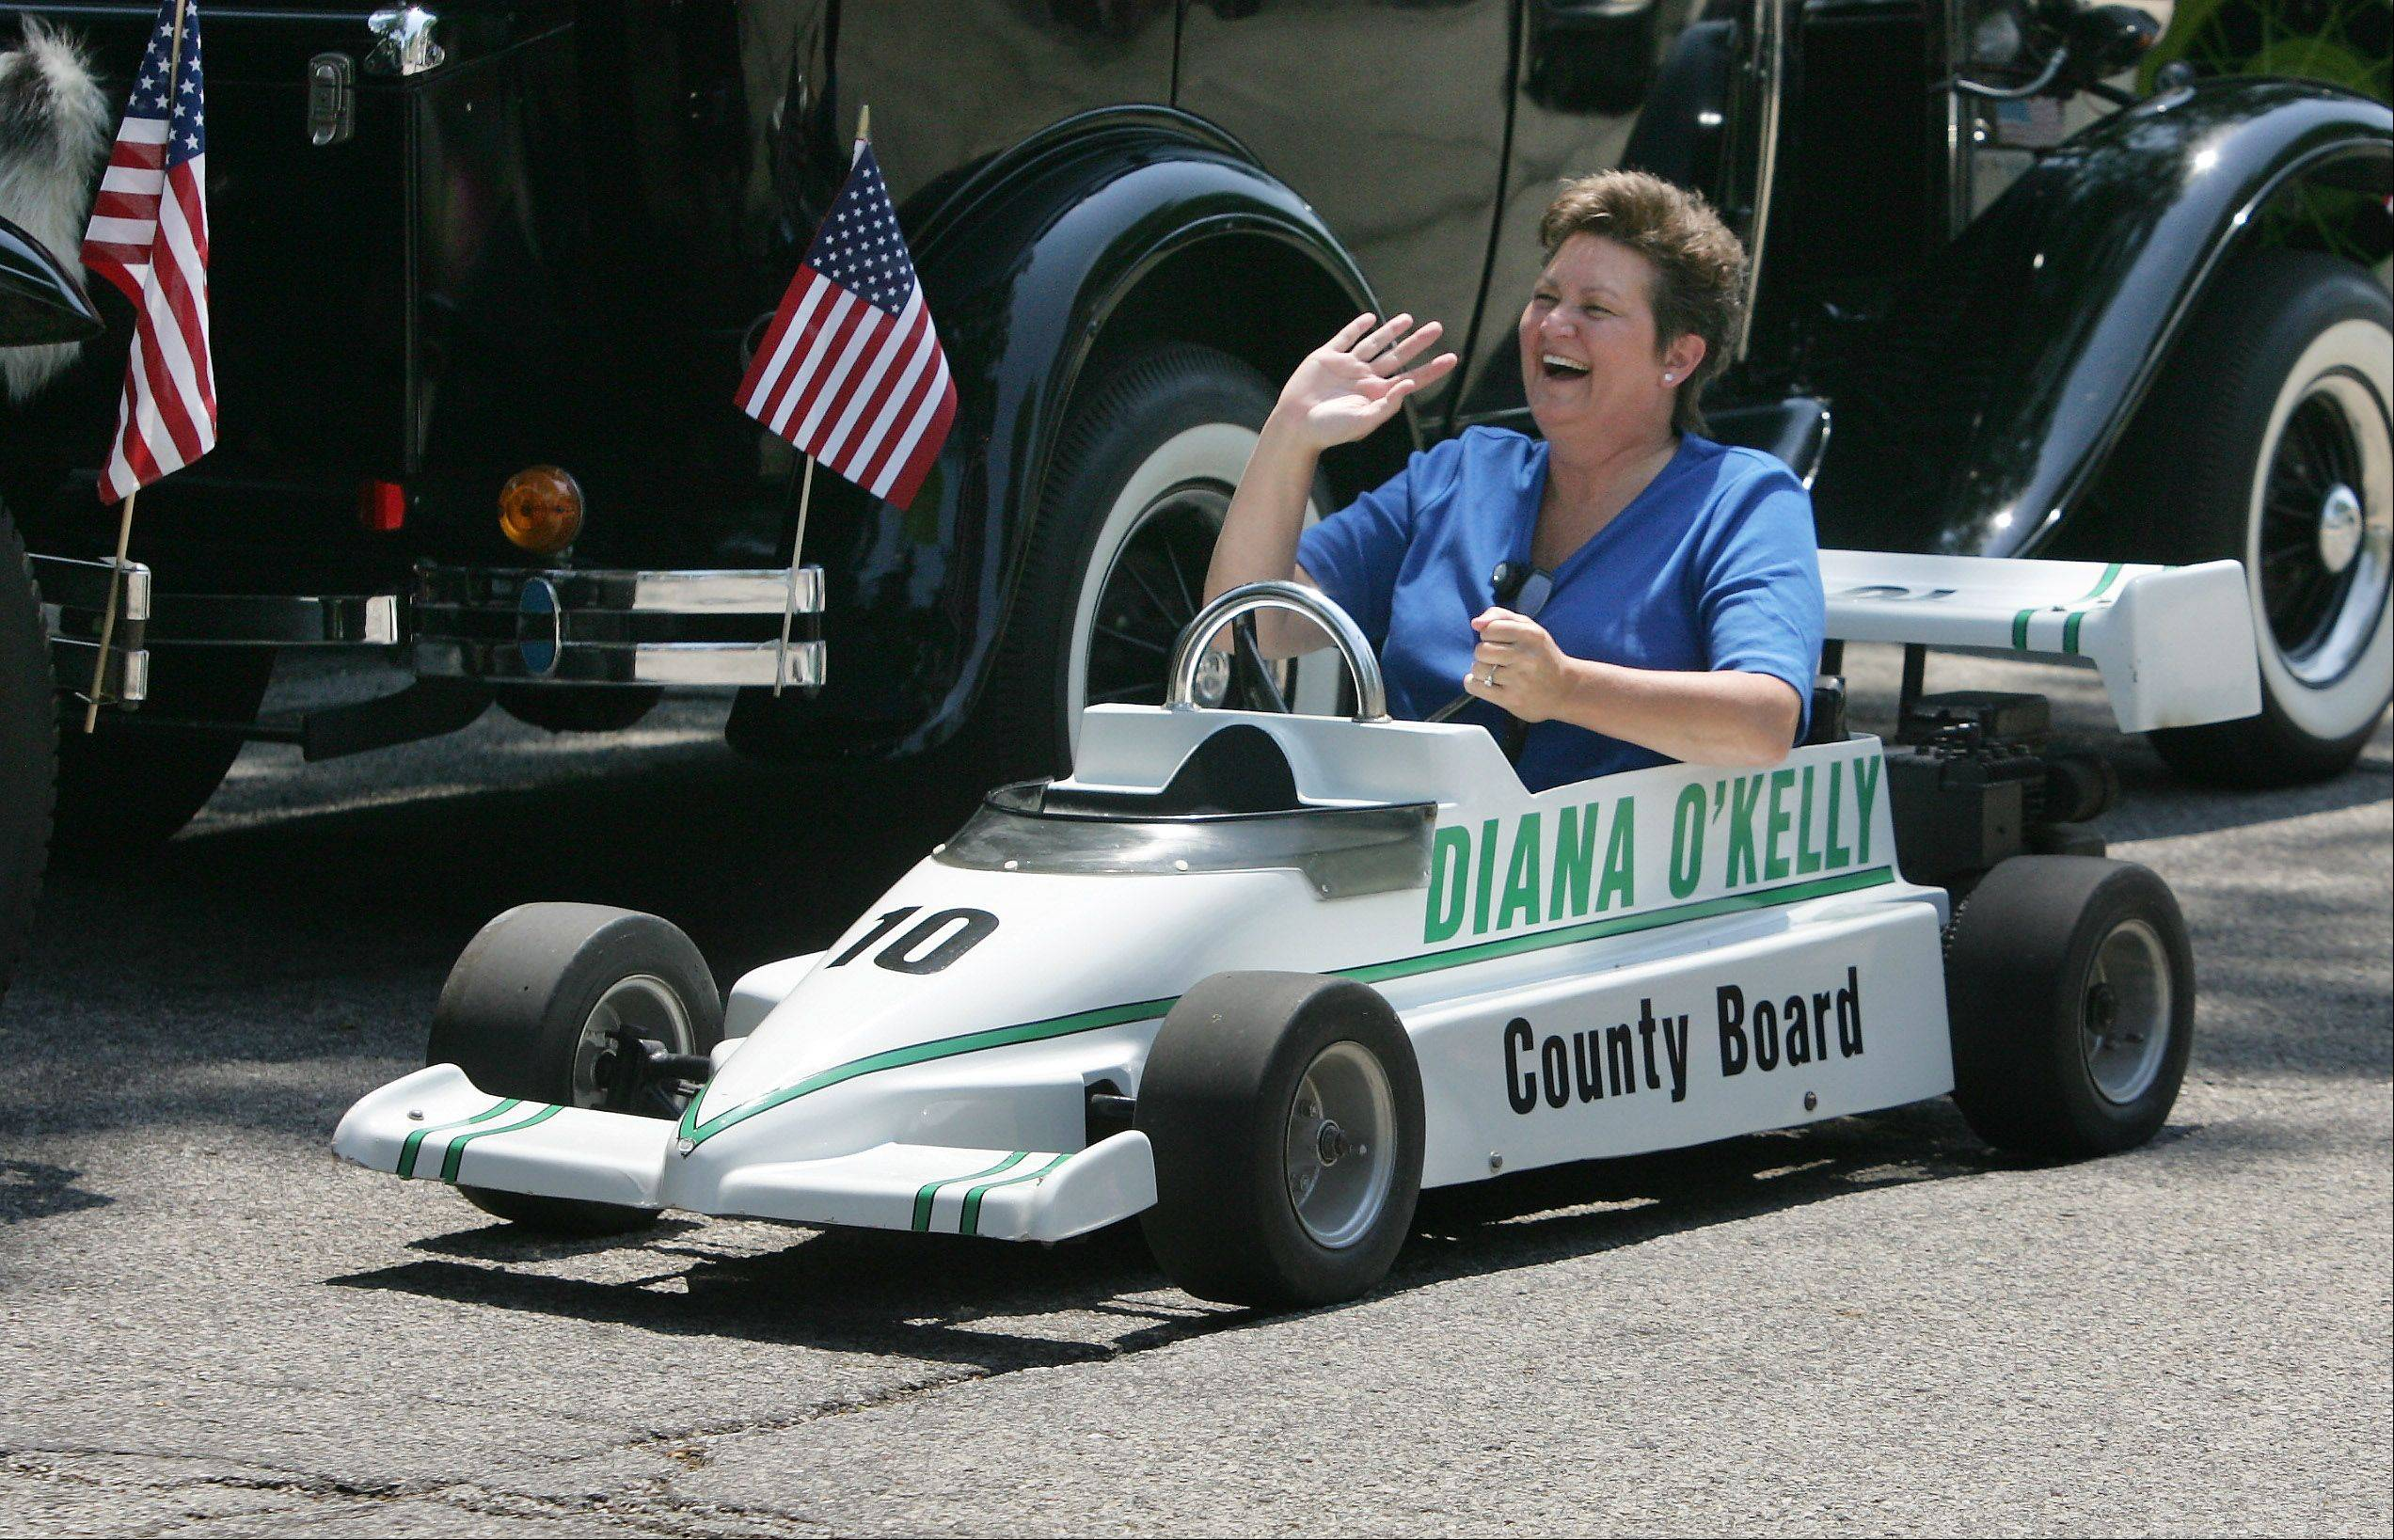 Lake County Board member Diana O'Kelly waves as she drives a mini race car during the Mundelein Community Days Parade Sunday as it makes its way along Hawley Street.